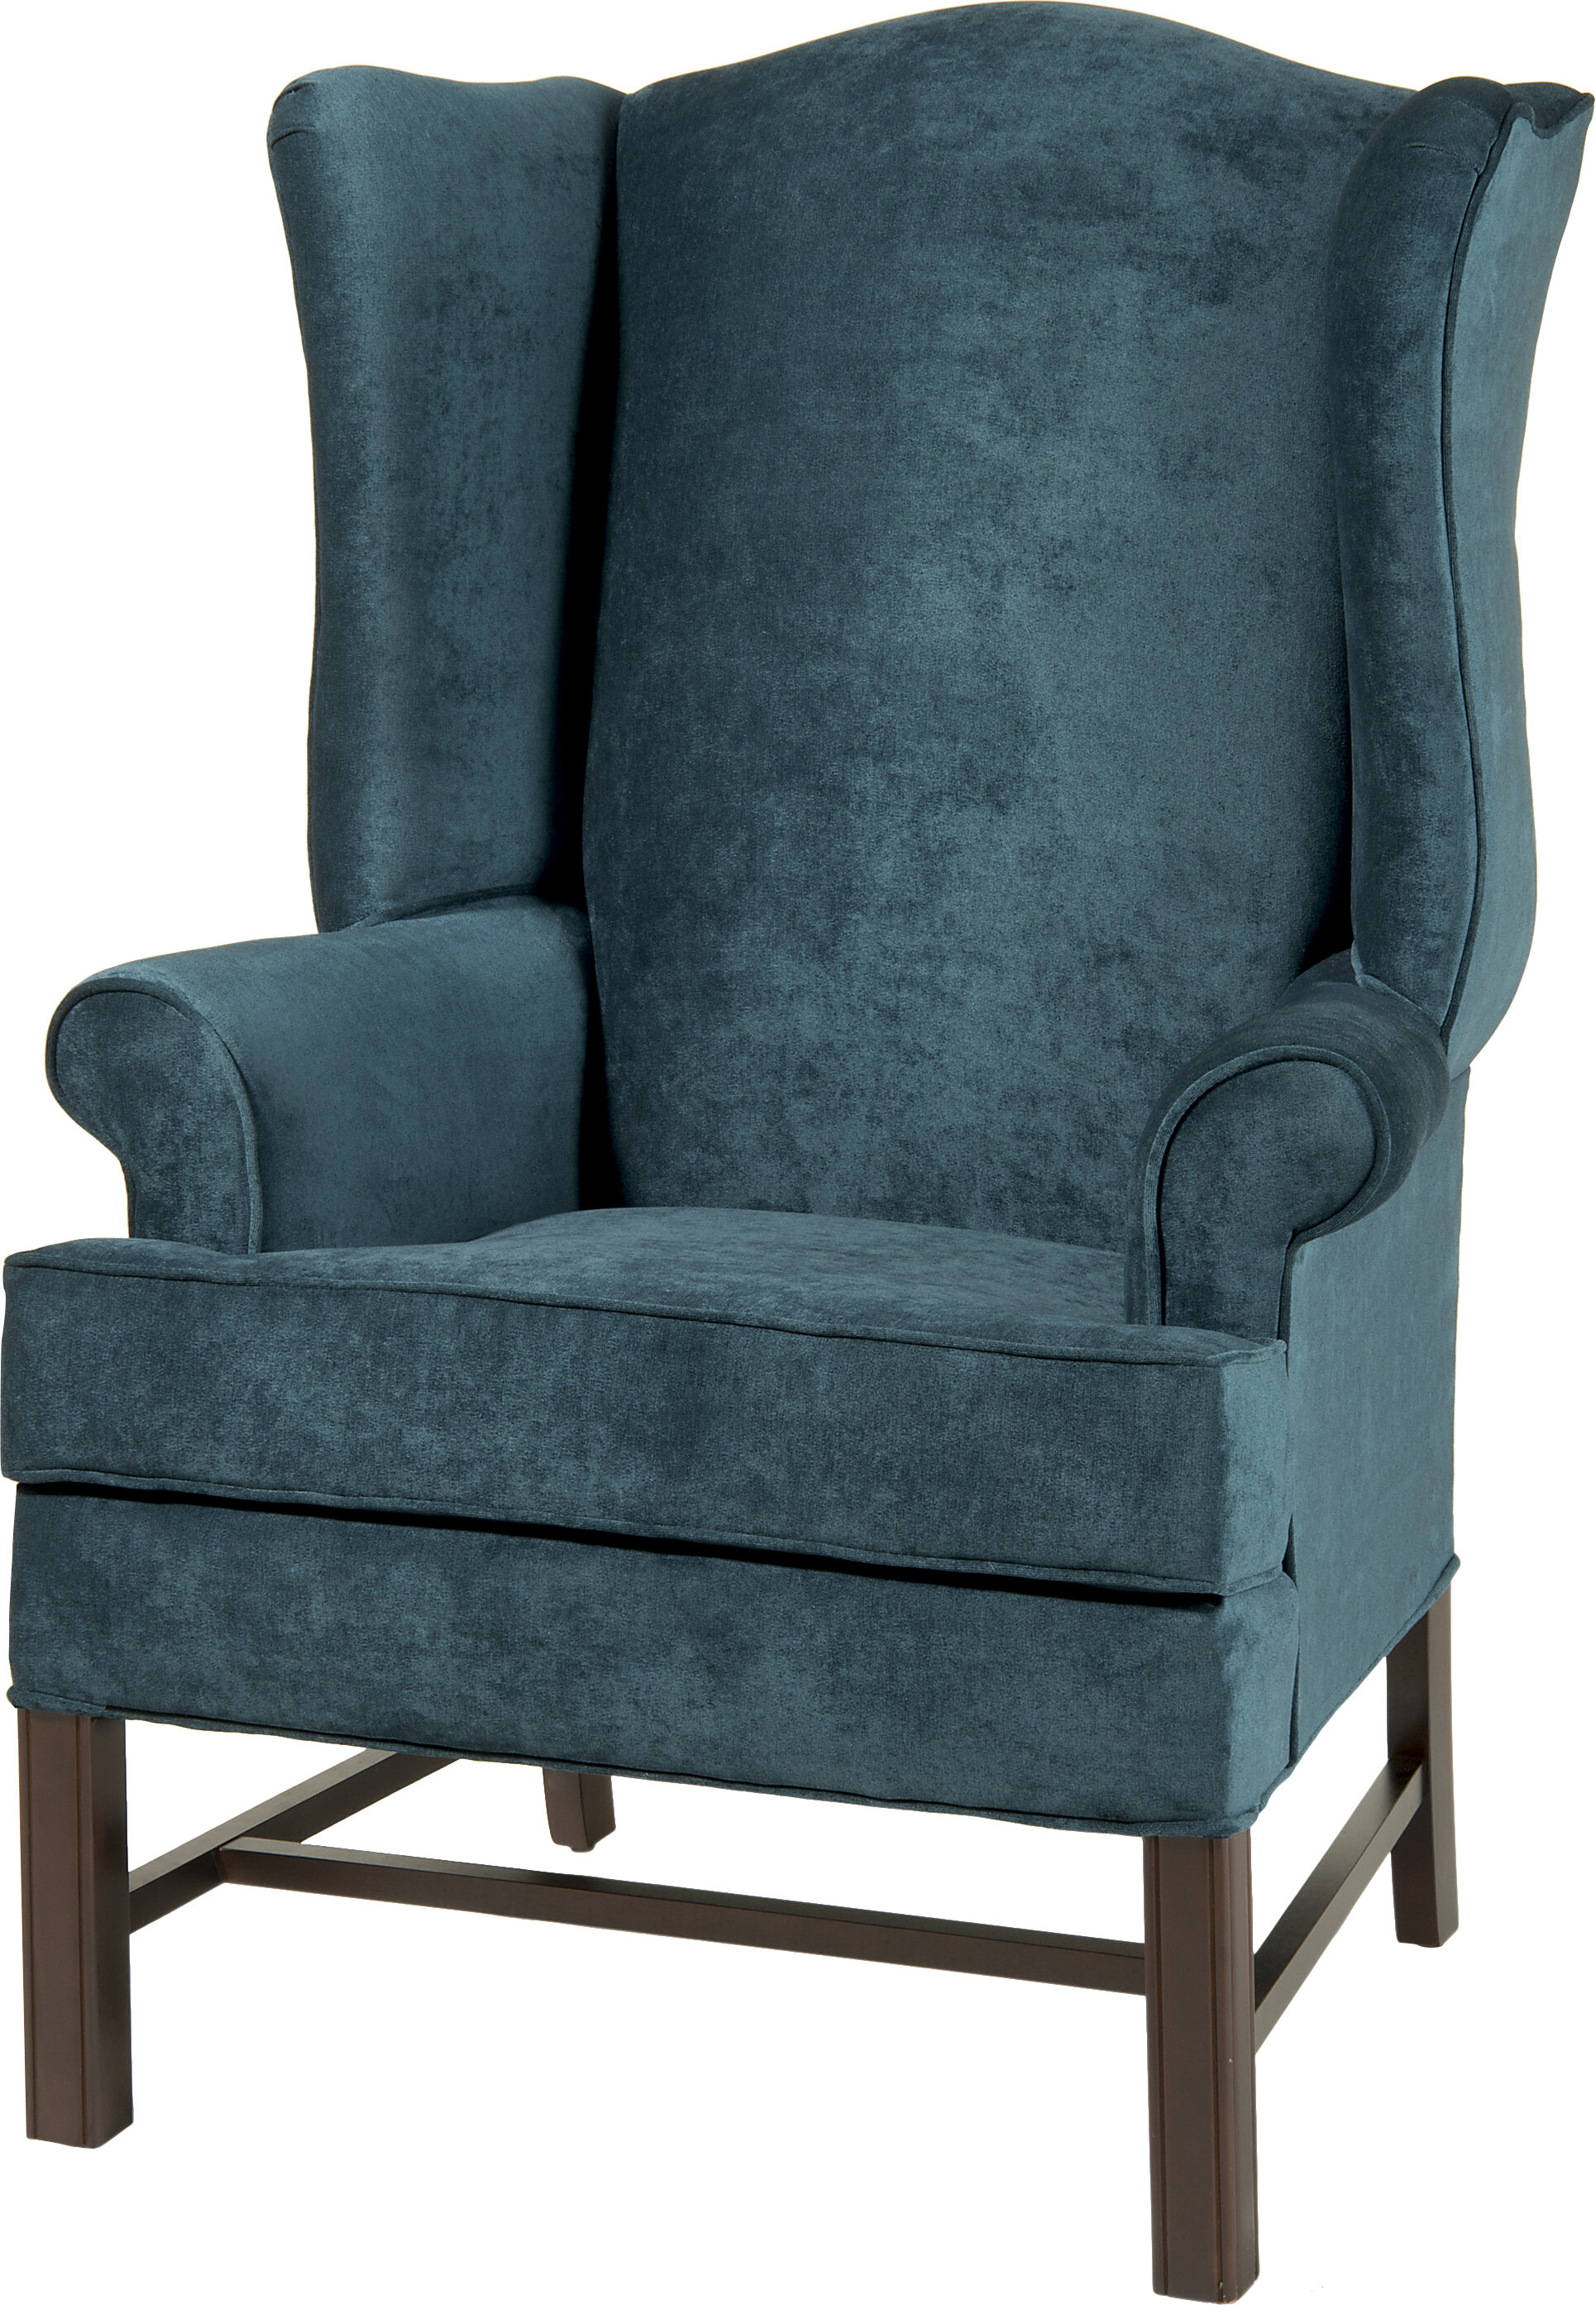 Delicieux Darby Home Co Wayne Chippendale Wingback Chair U0026 Reviews | Wayfair